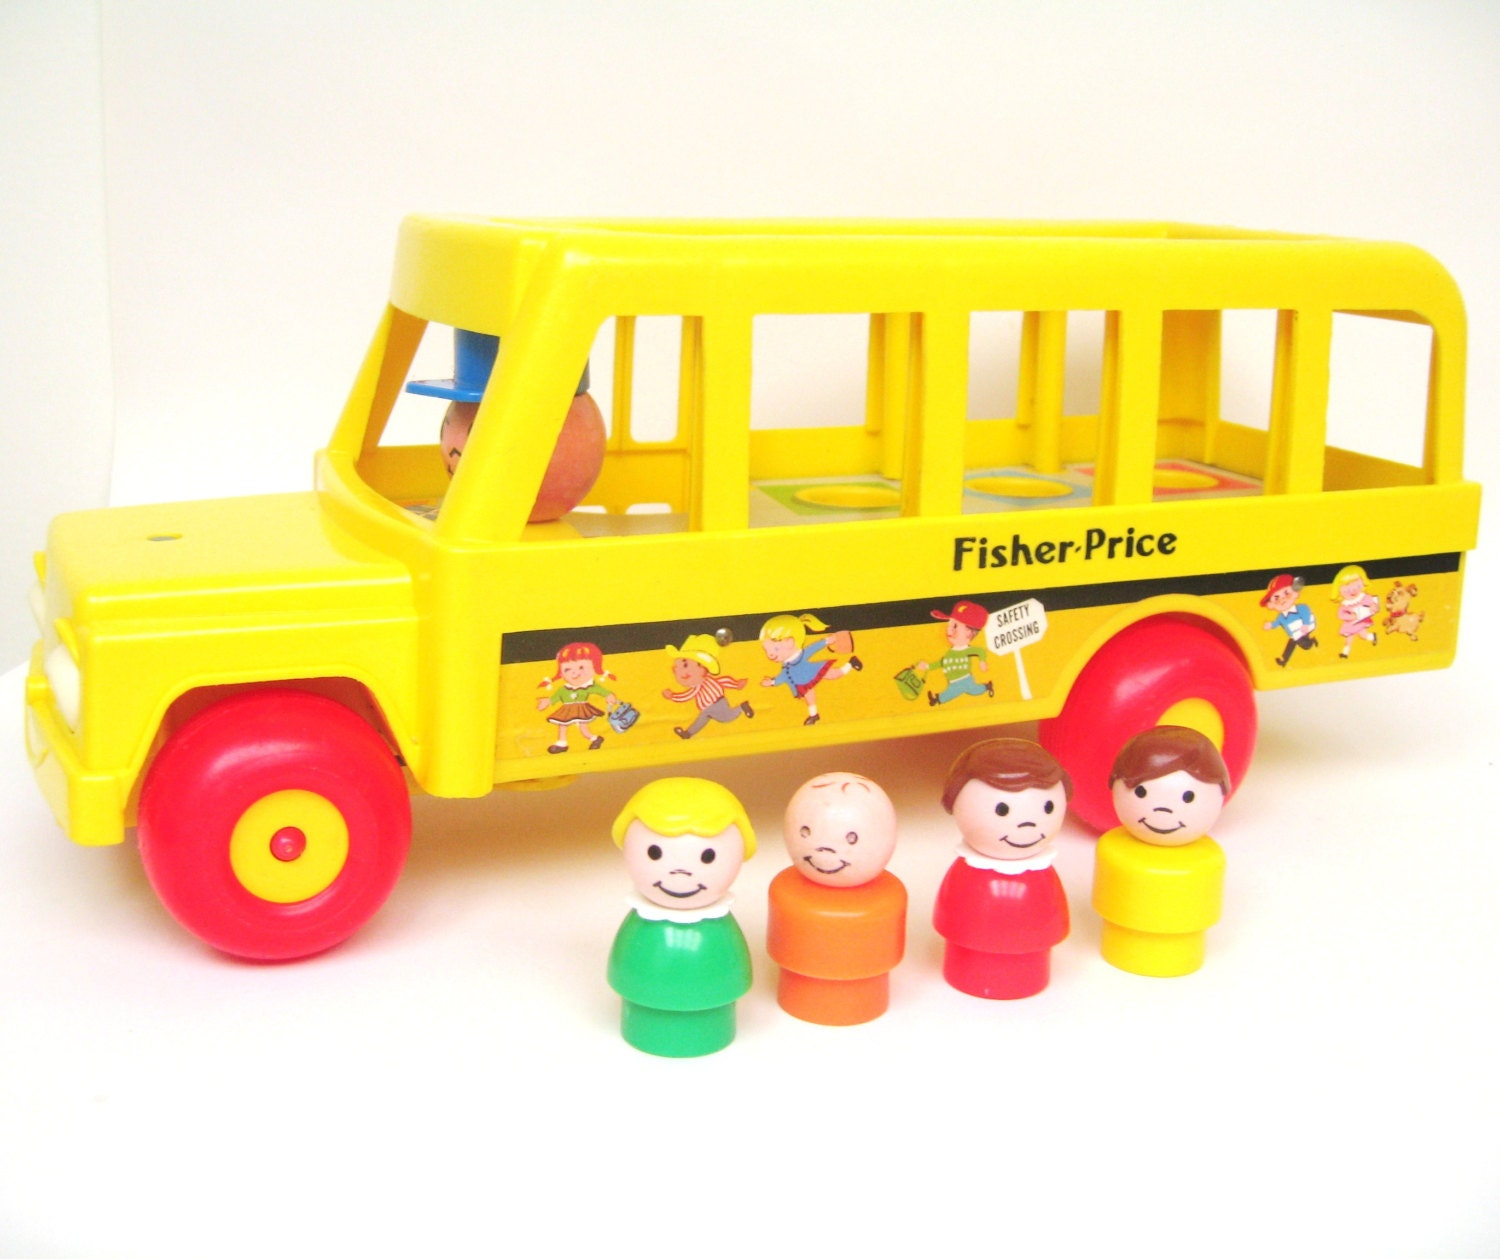 Vintage Fisher Price School Bus - toysofthepast